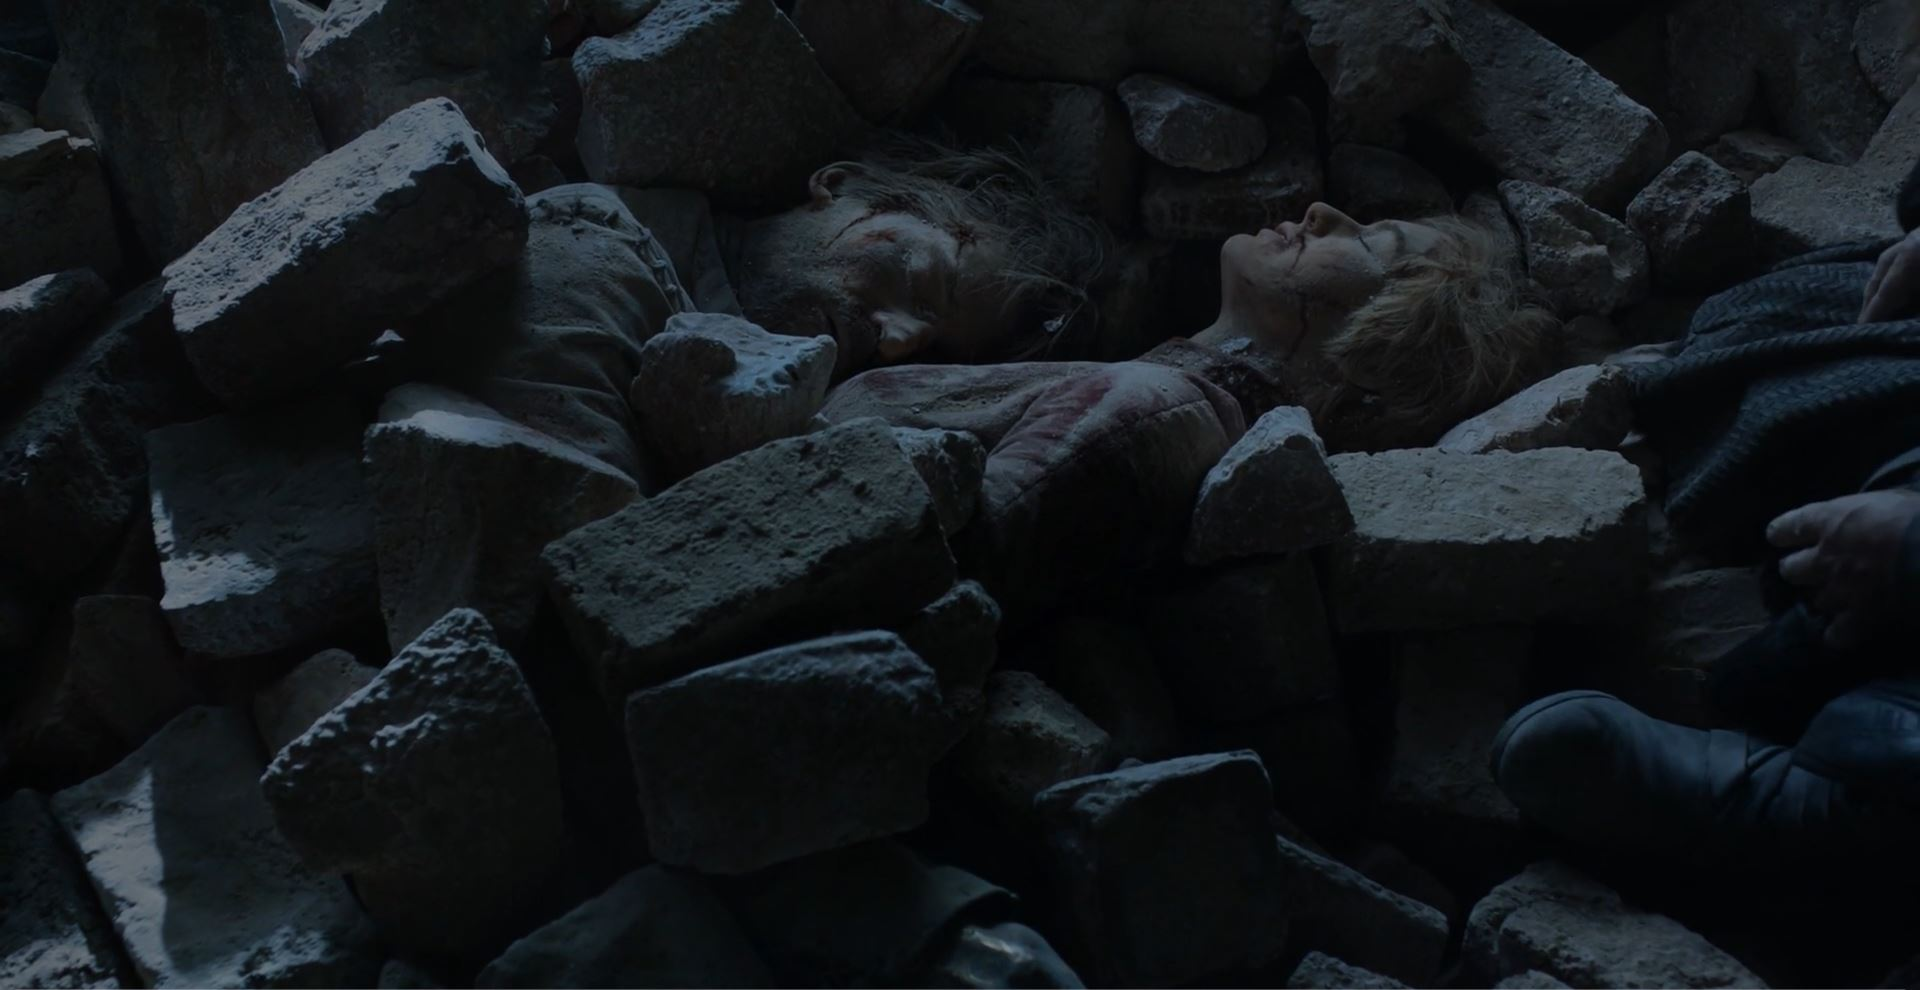 Game of Thrones S08E06 Review - Jaime and Cersei dead in rubble